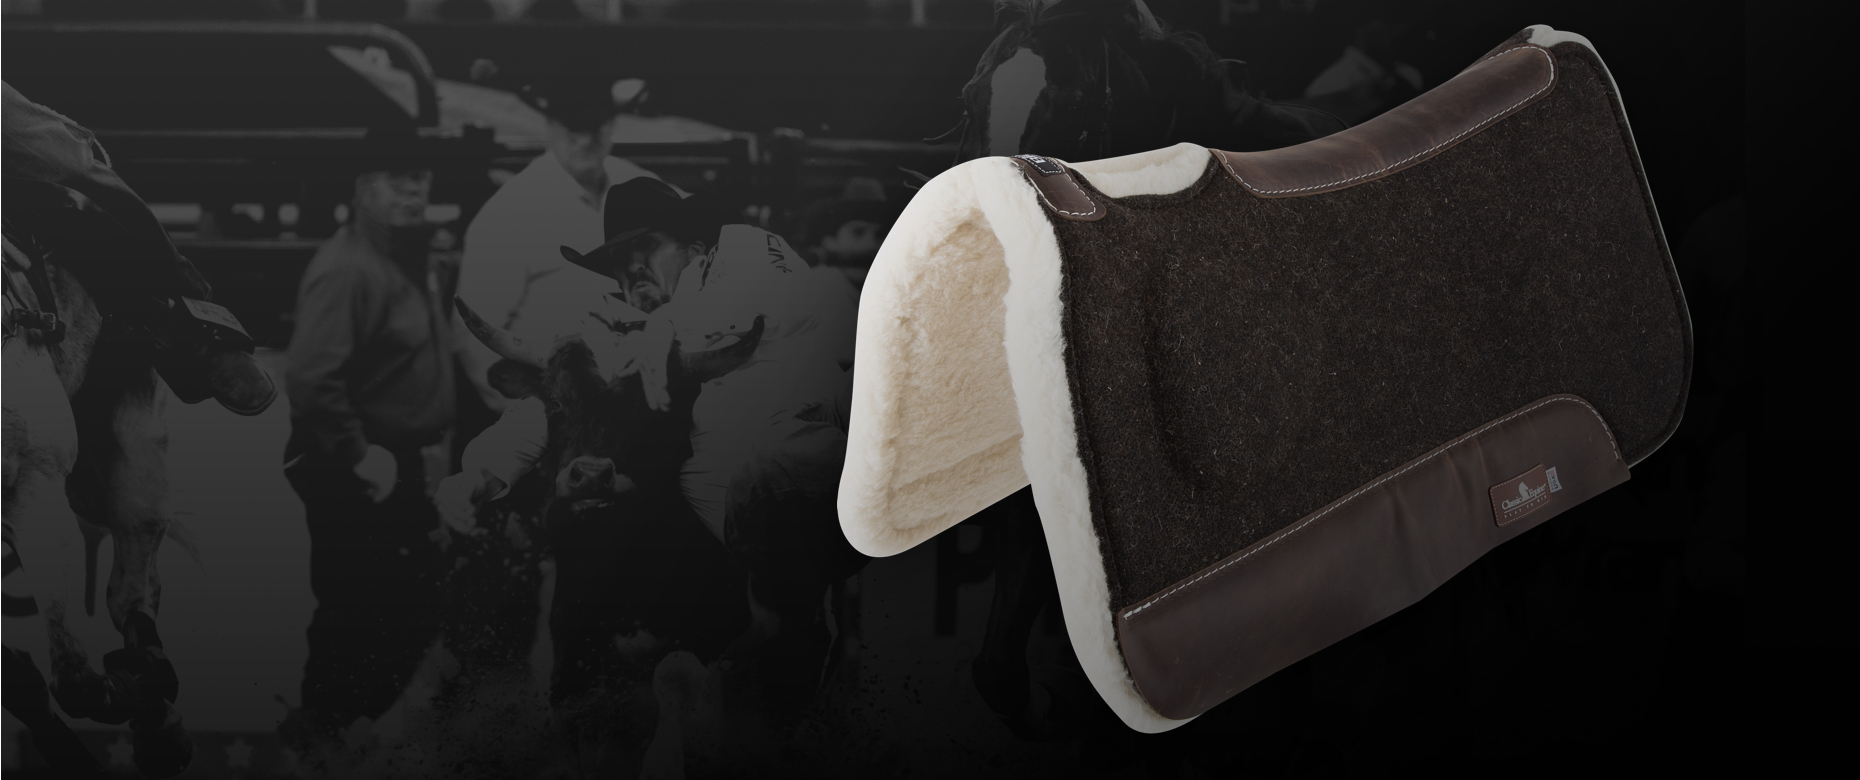 The Biofit pad levels the saddle and provides support with a strategic build up